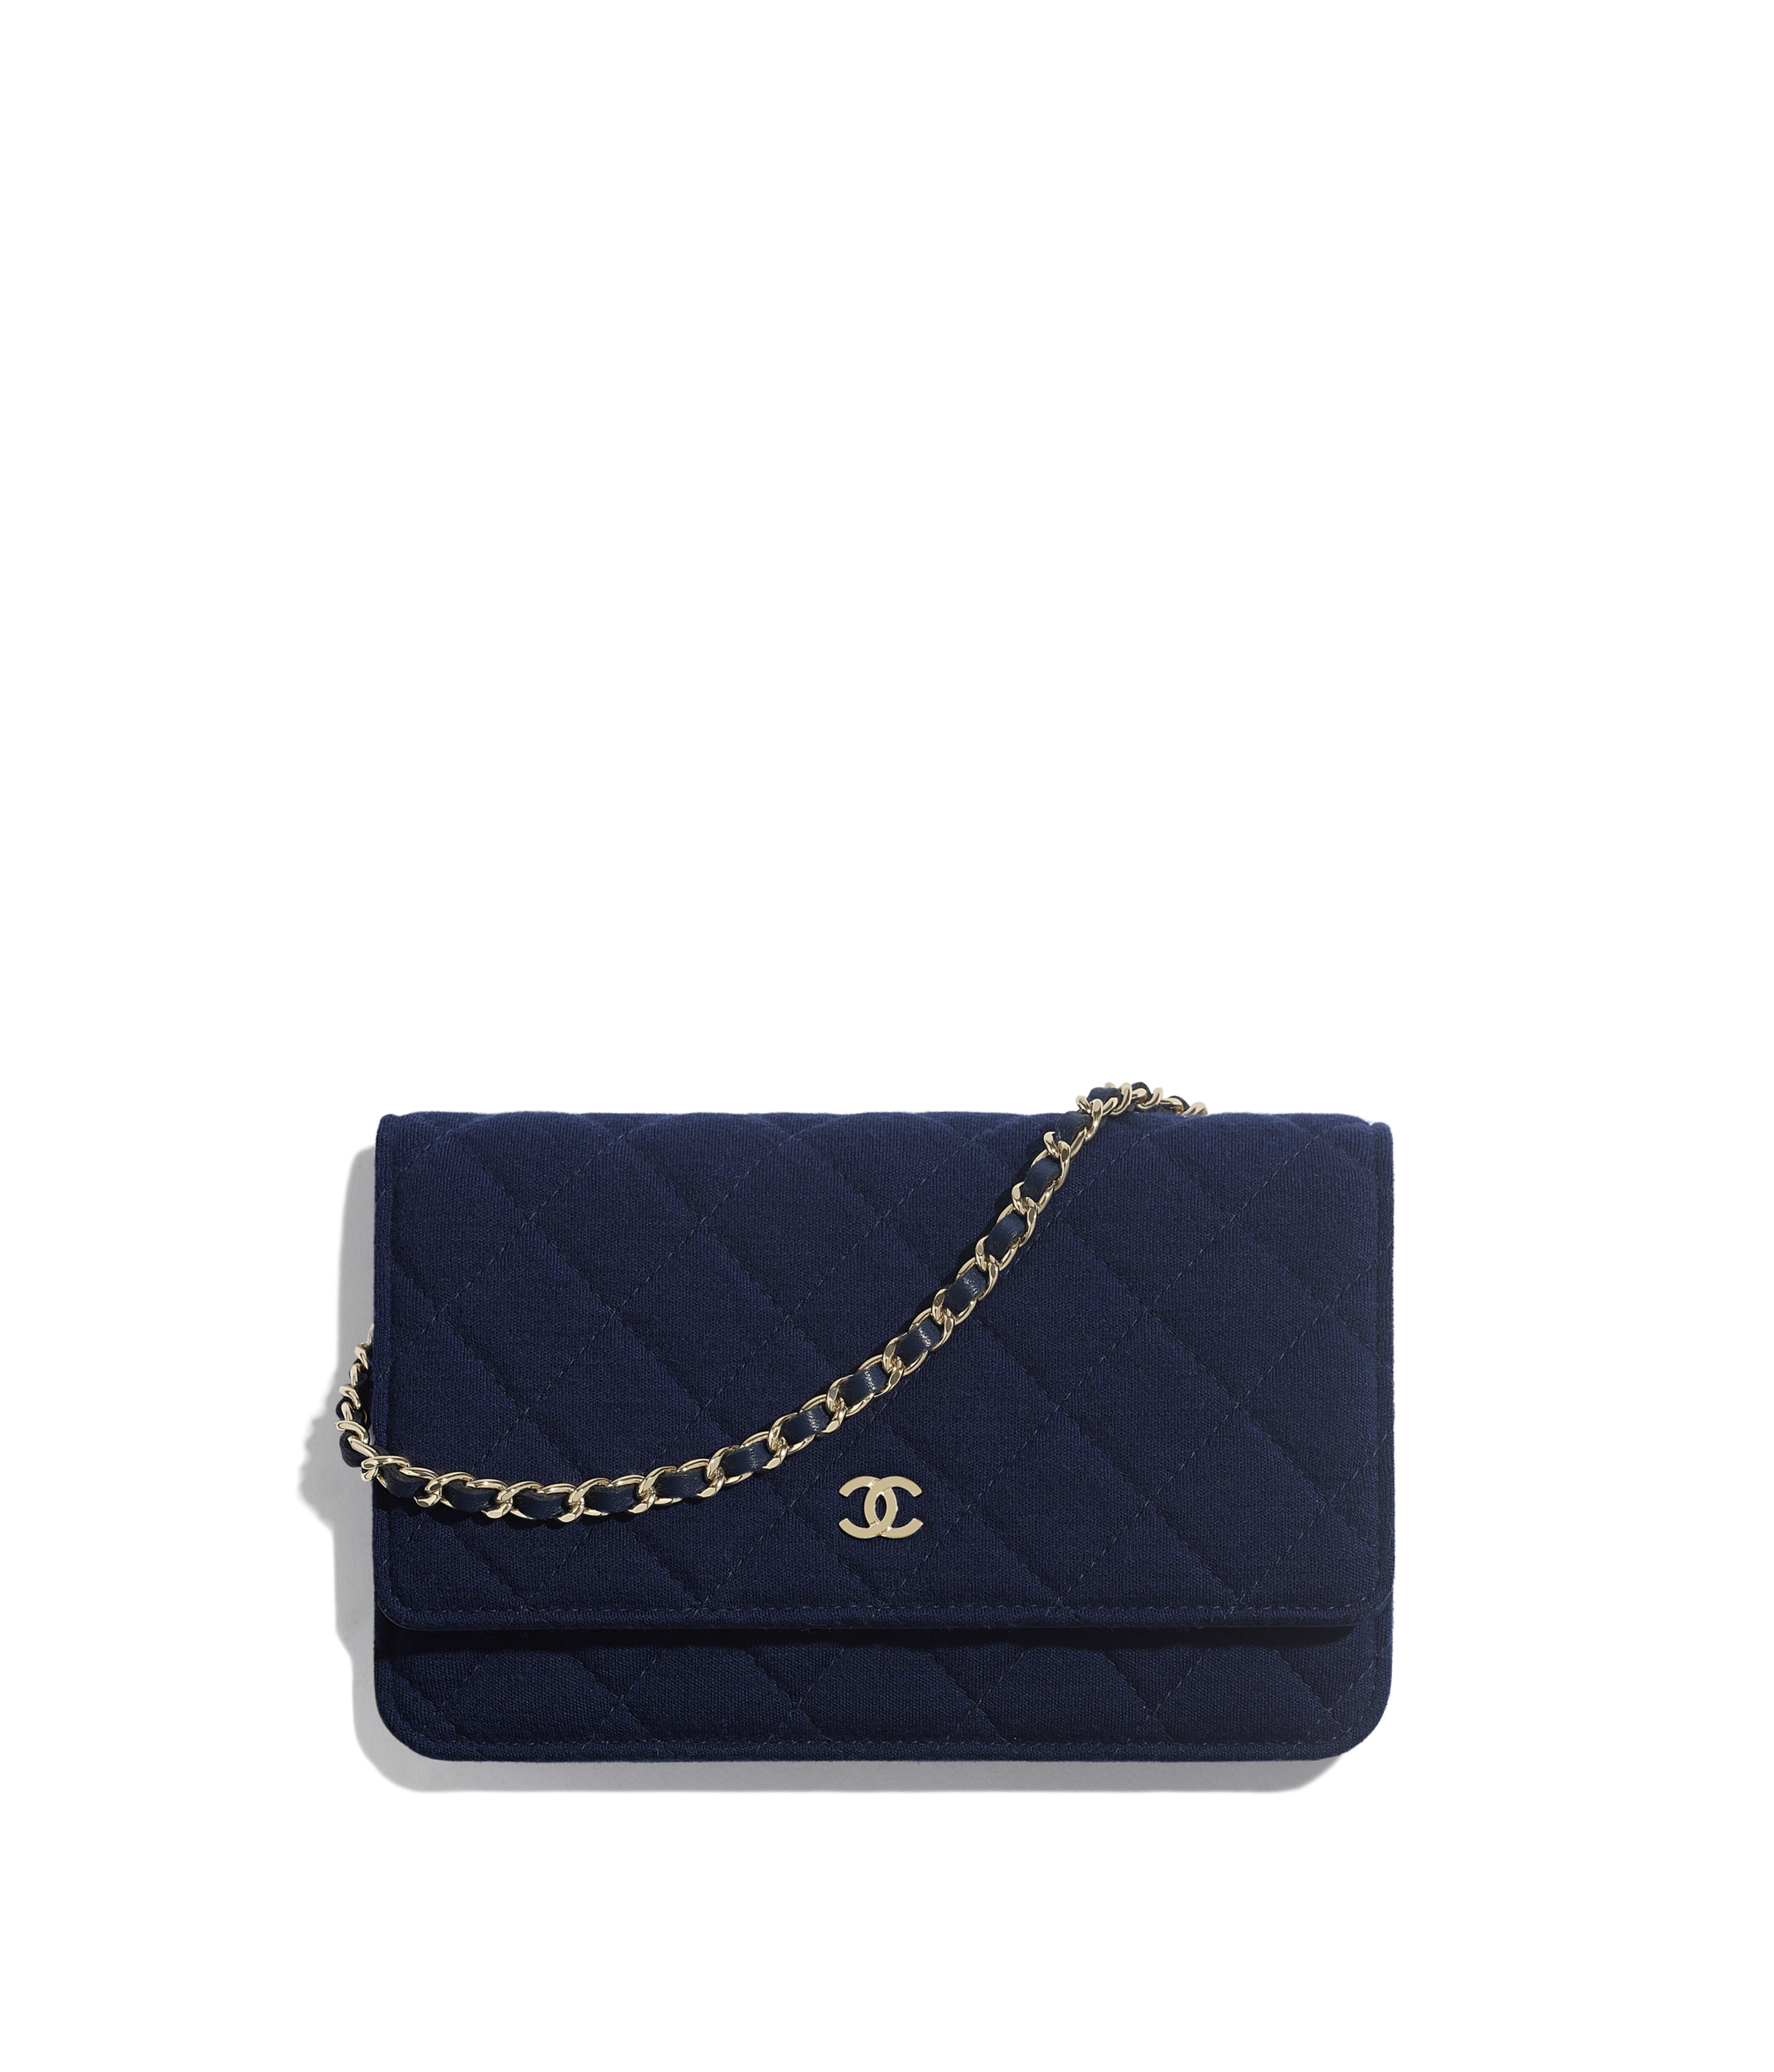 f0249550dc578 Classic Wallet on Chain Jersey & Gold-Tone Metal, Navy Blue Ref.  AP0250Y60389N4875